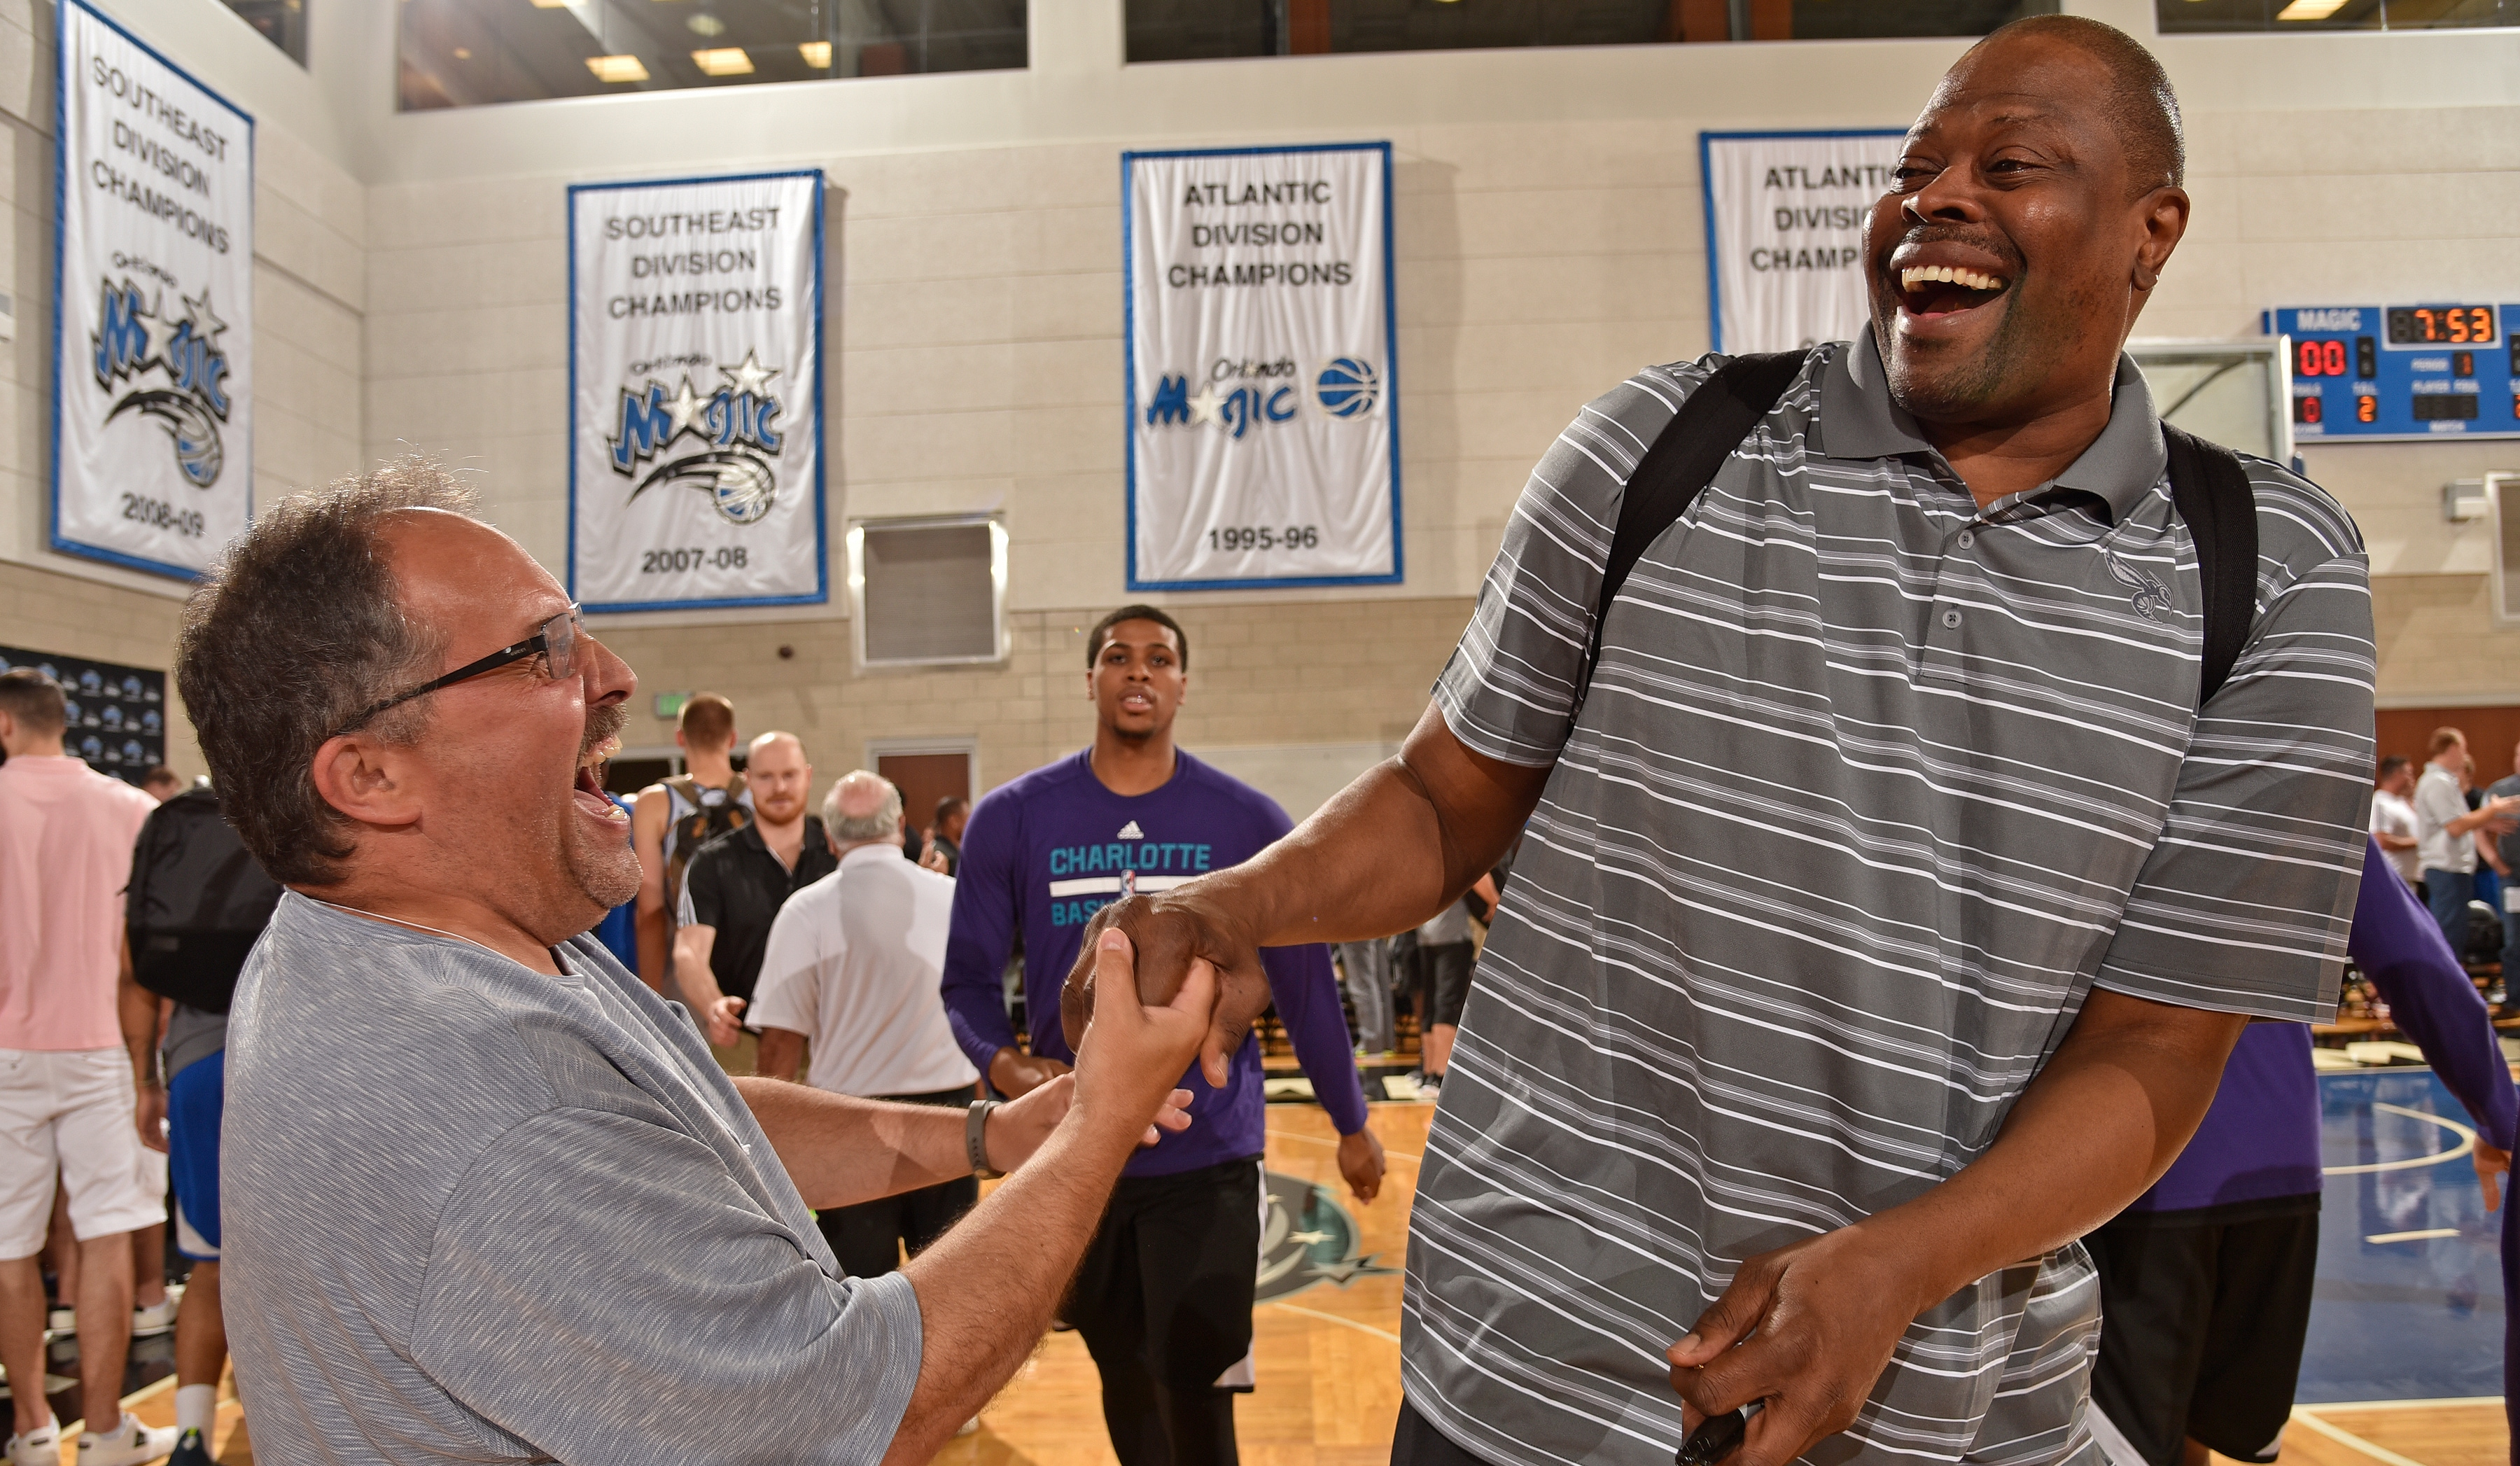 Stan Van Gundy Thinks Patrick Ewing Would Be Great Fit for Georgetown Coaching Job